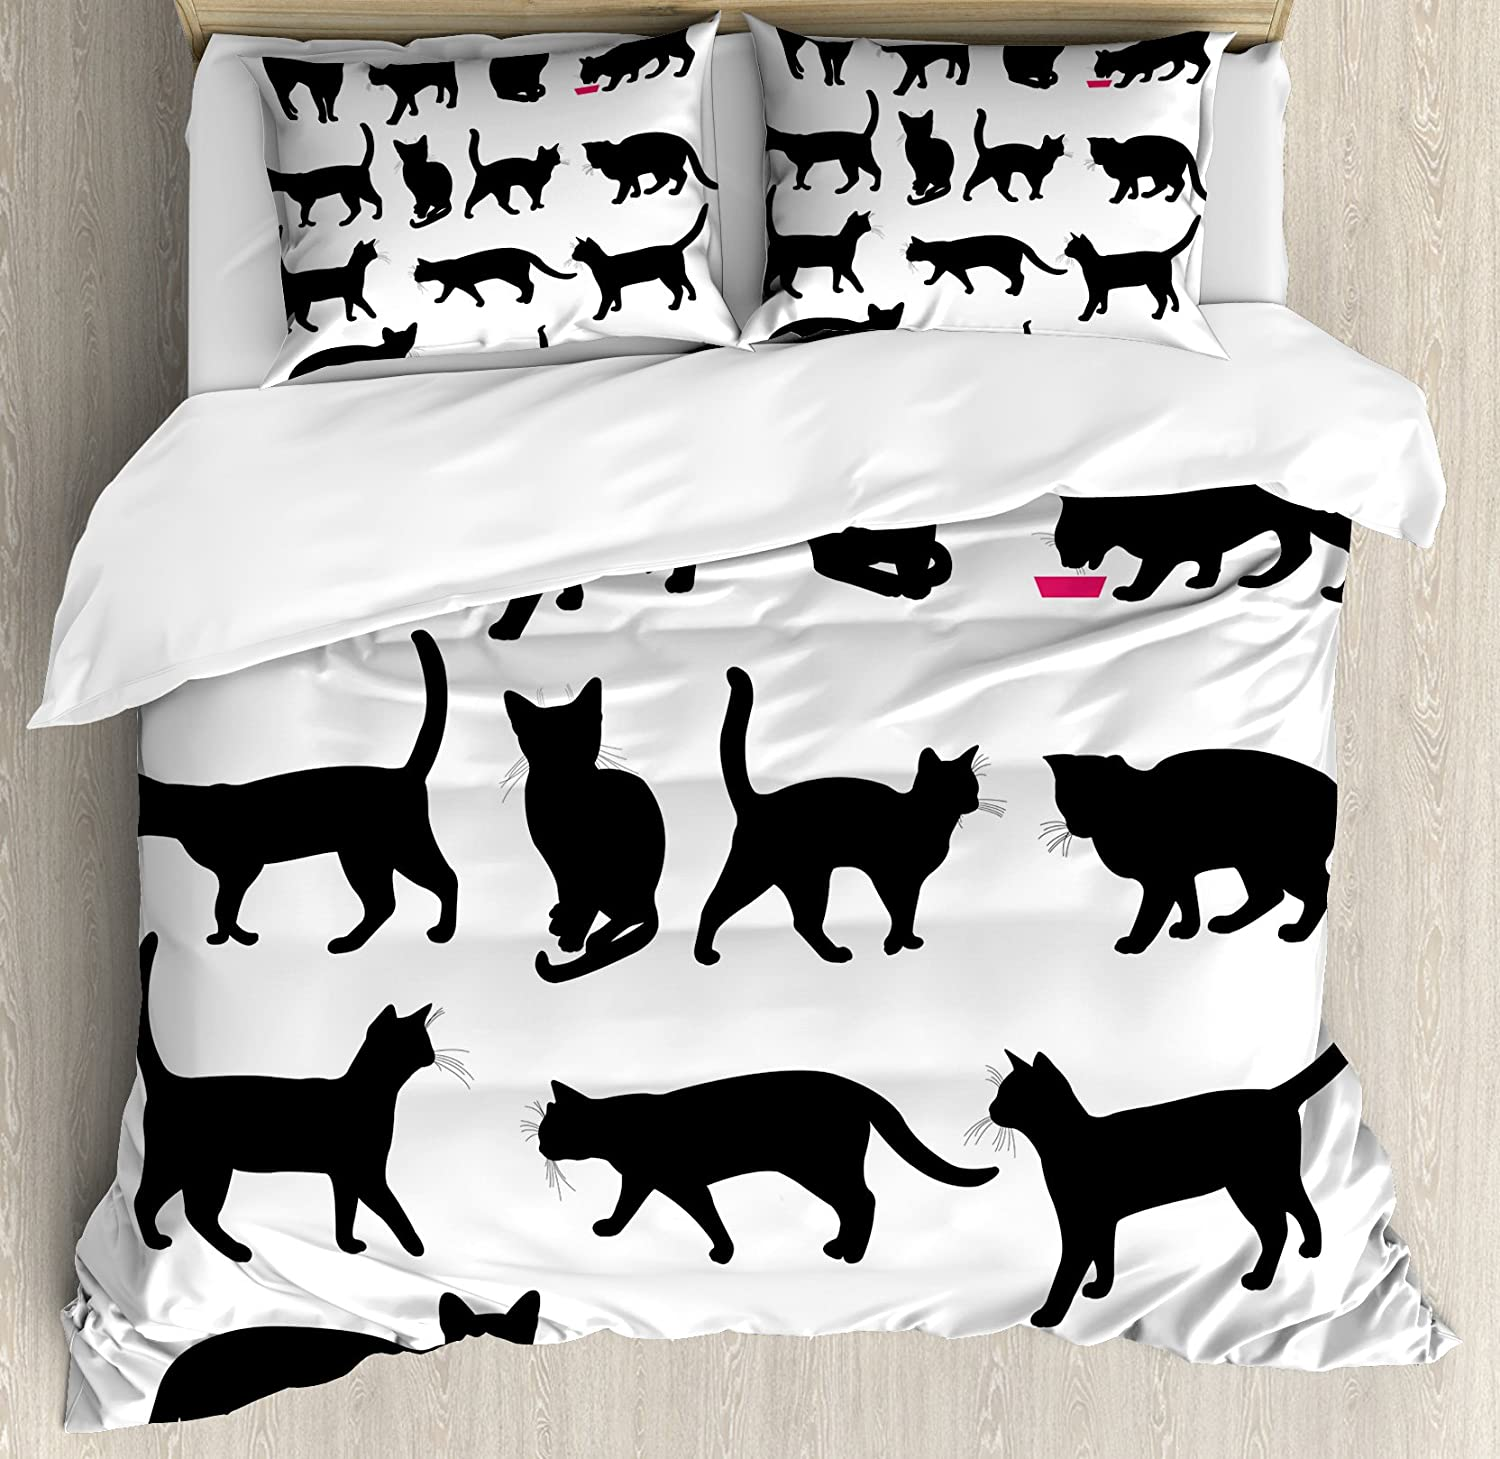 Ambesonne Cat Duvet Cover Set, Black Cat Silhouettes in Different Poses Domestic Pets Kitty Paws Tail and Whiskers, Decorative 3 Piece Bedding Set with 2 Pillow Shams, Queen Size, White Black